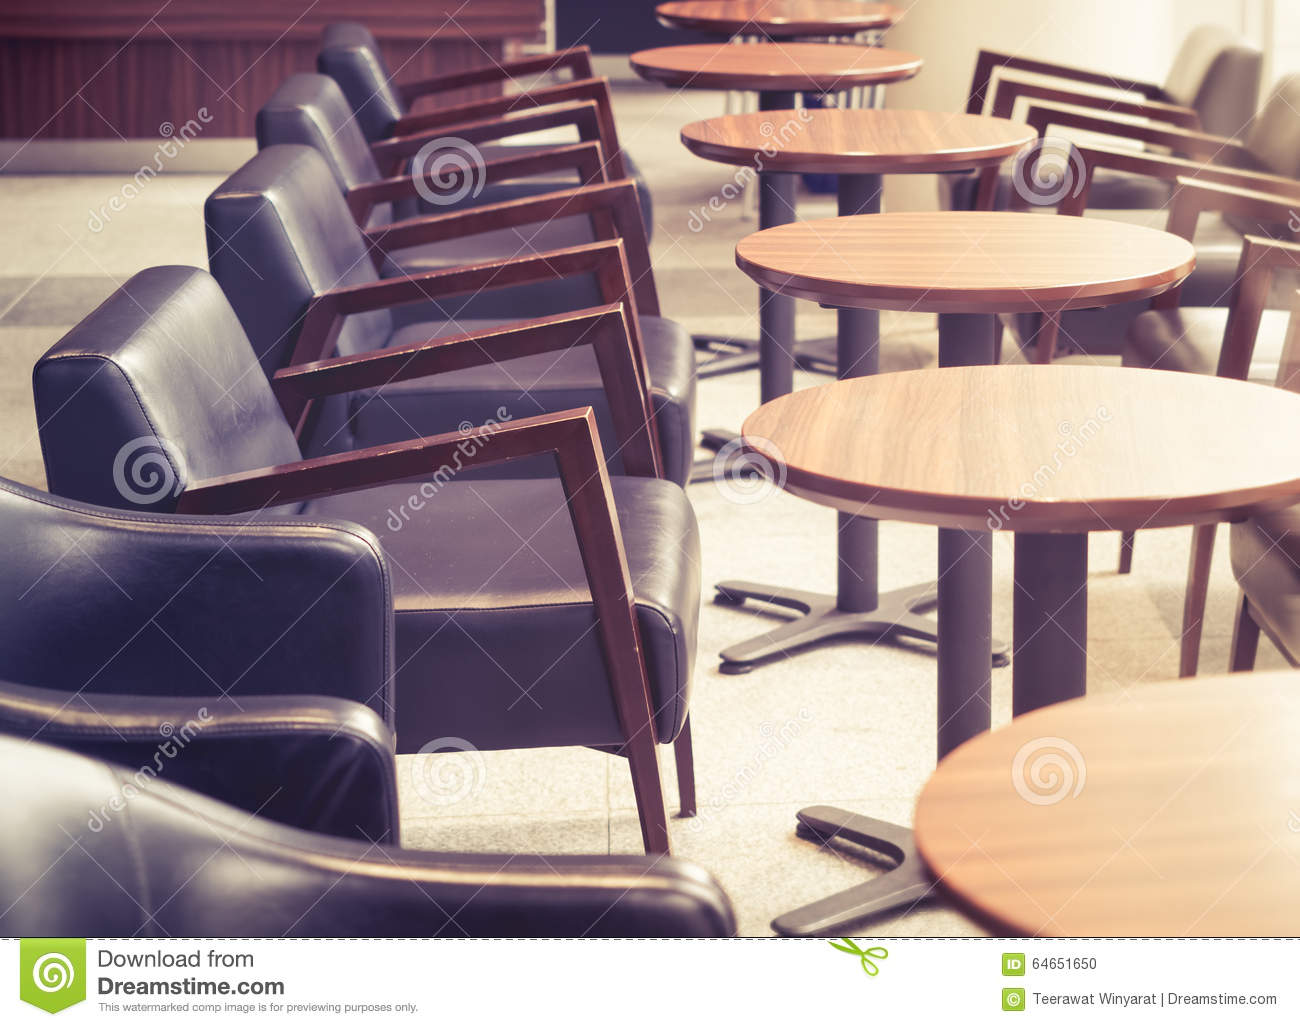 retro cafe table and chairs adirondack style plastic uk interior with tables in bar restaurant stock vintage tone